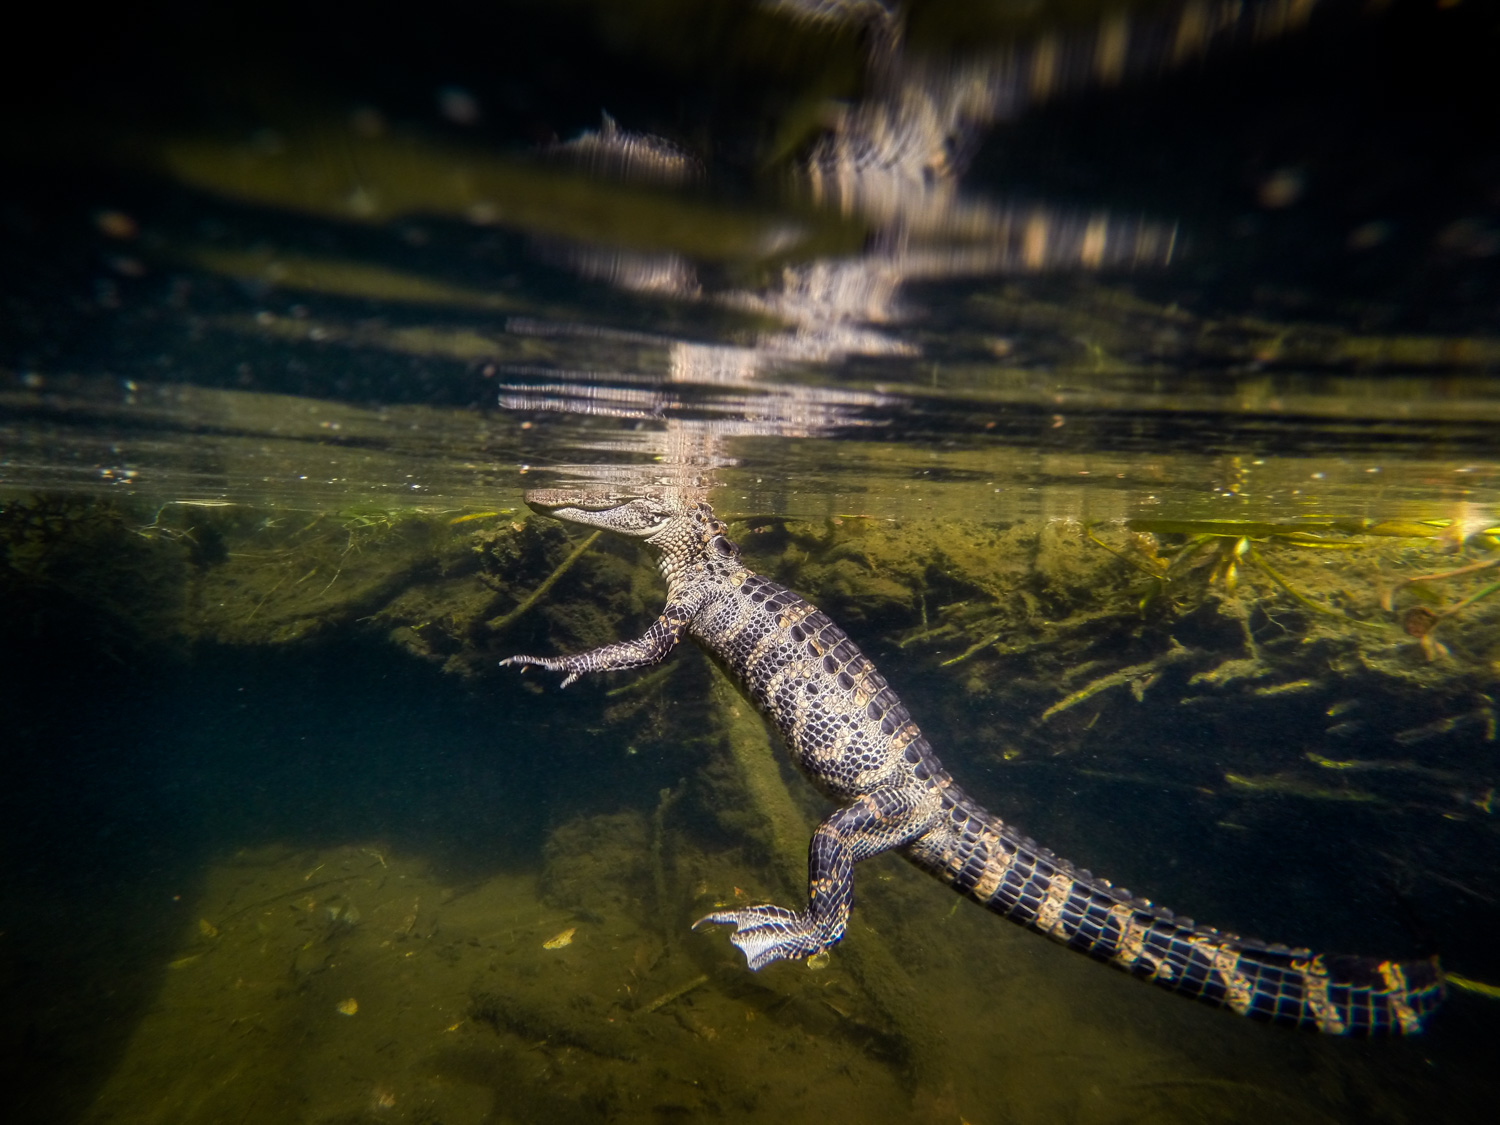 An alligator ( Alligator mississippiensis ) rests just below the surface in Florida's Silver Glen Spring.